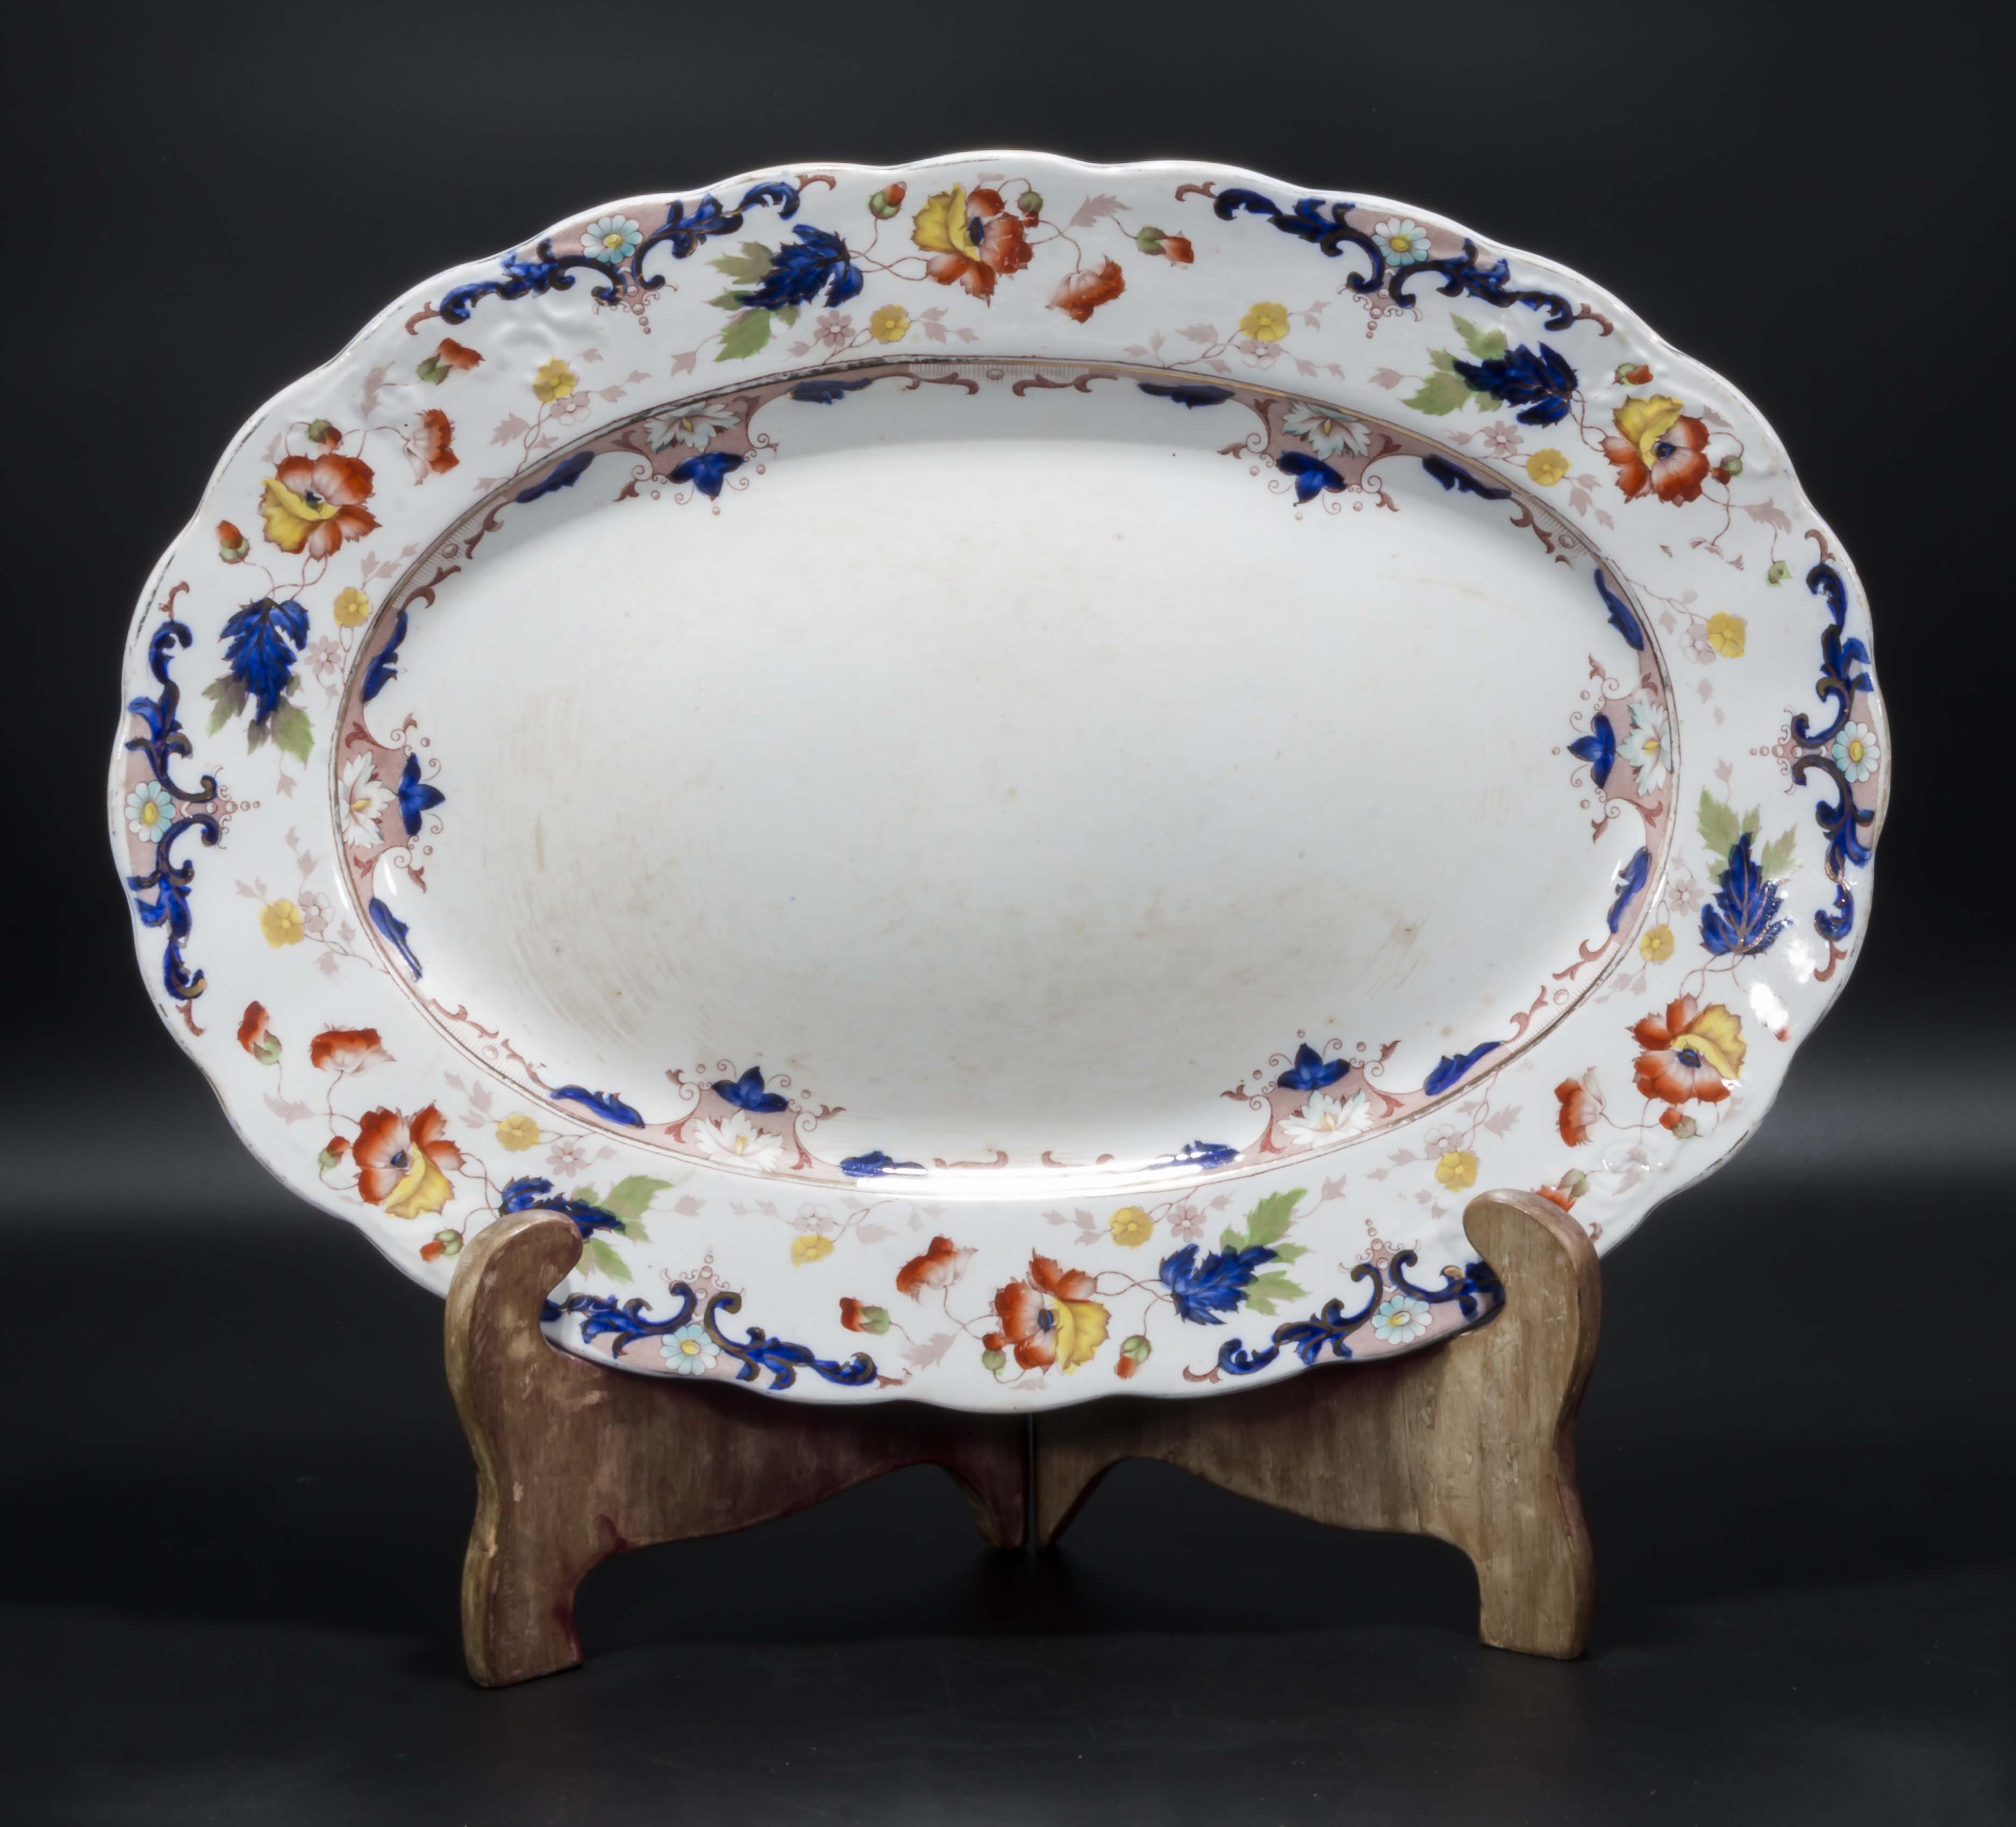 Lot 55 - A large serving plate